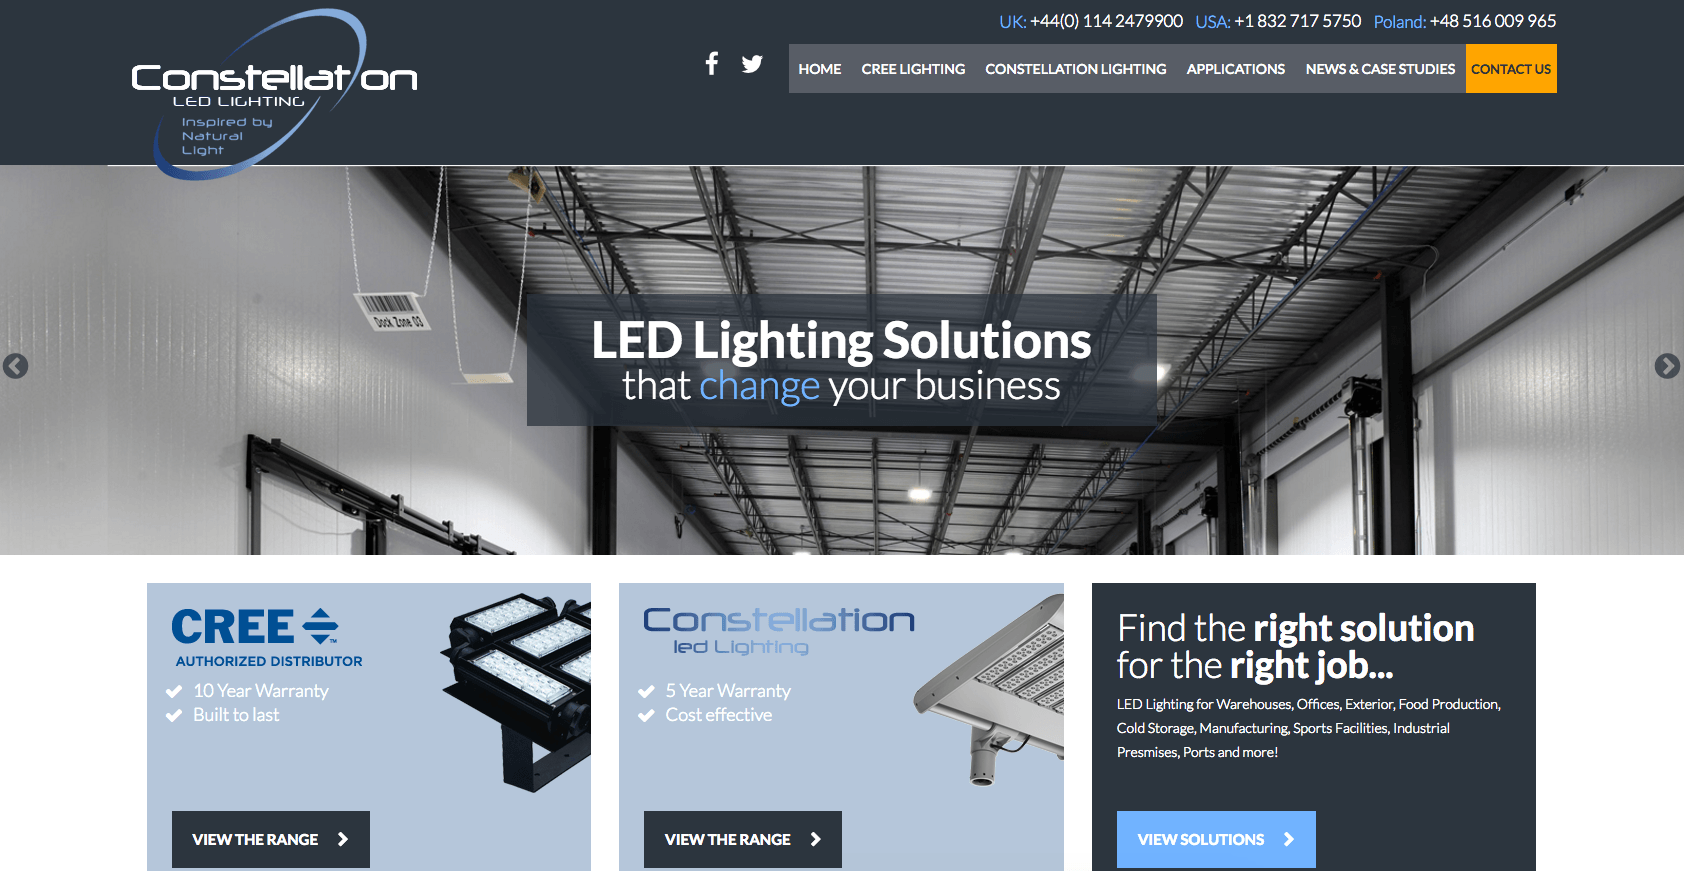 Constellation Lightin's new site